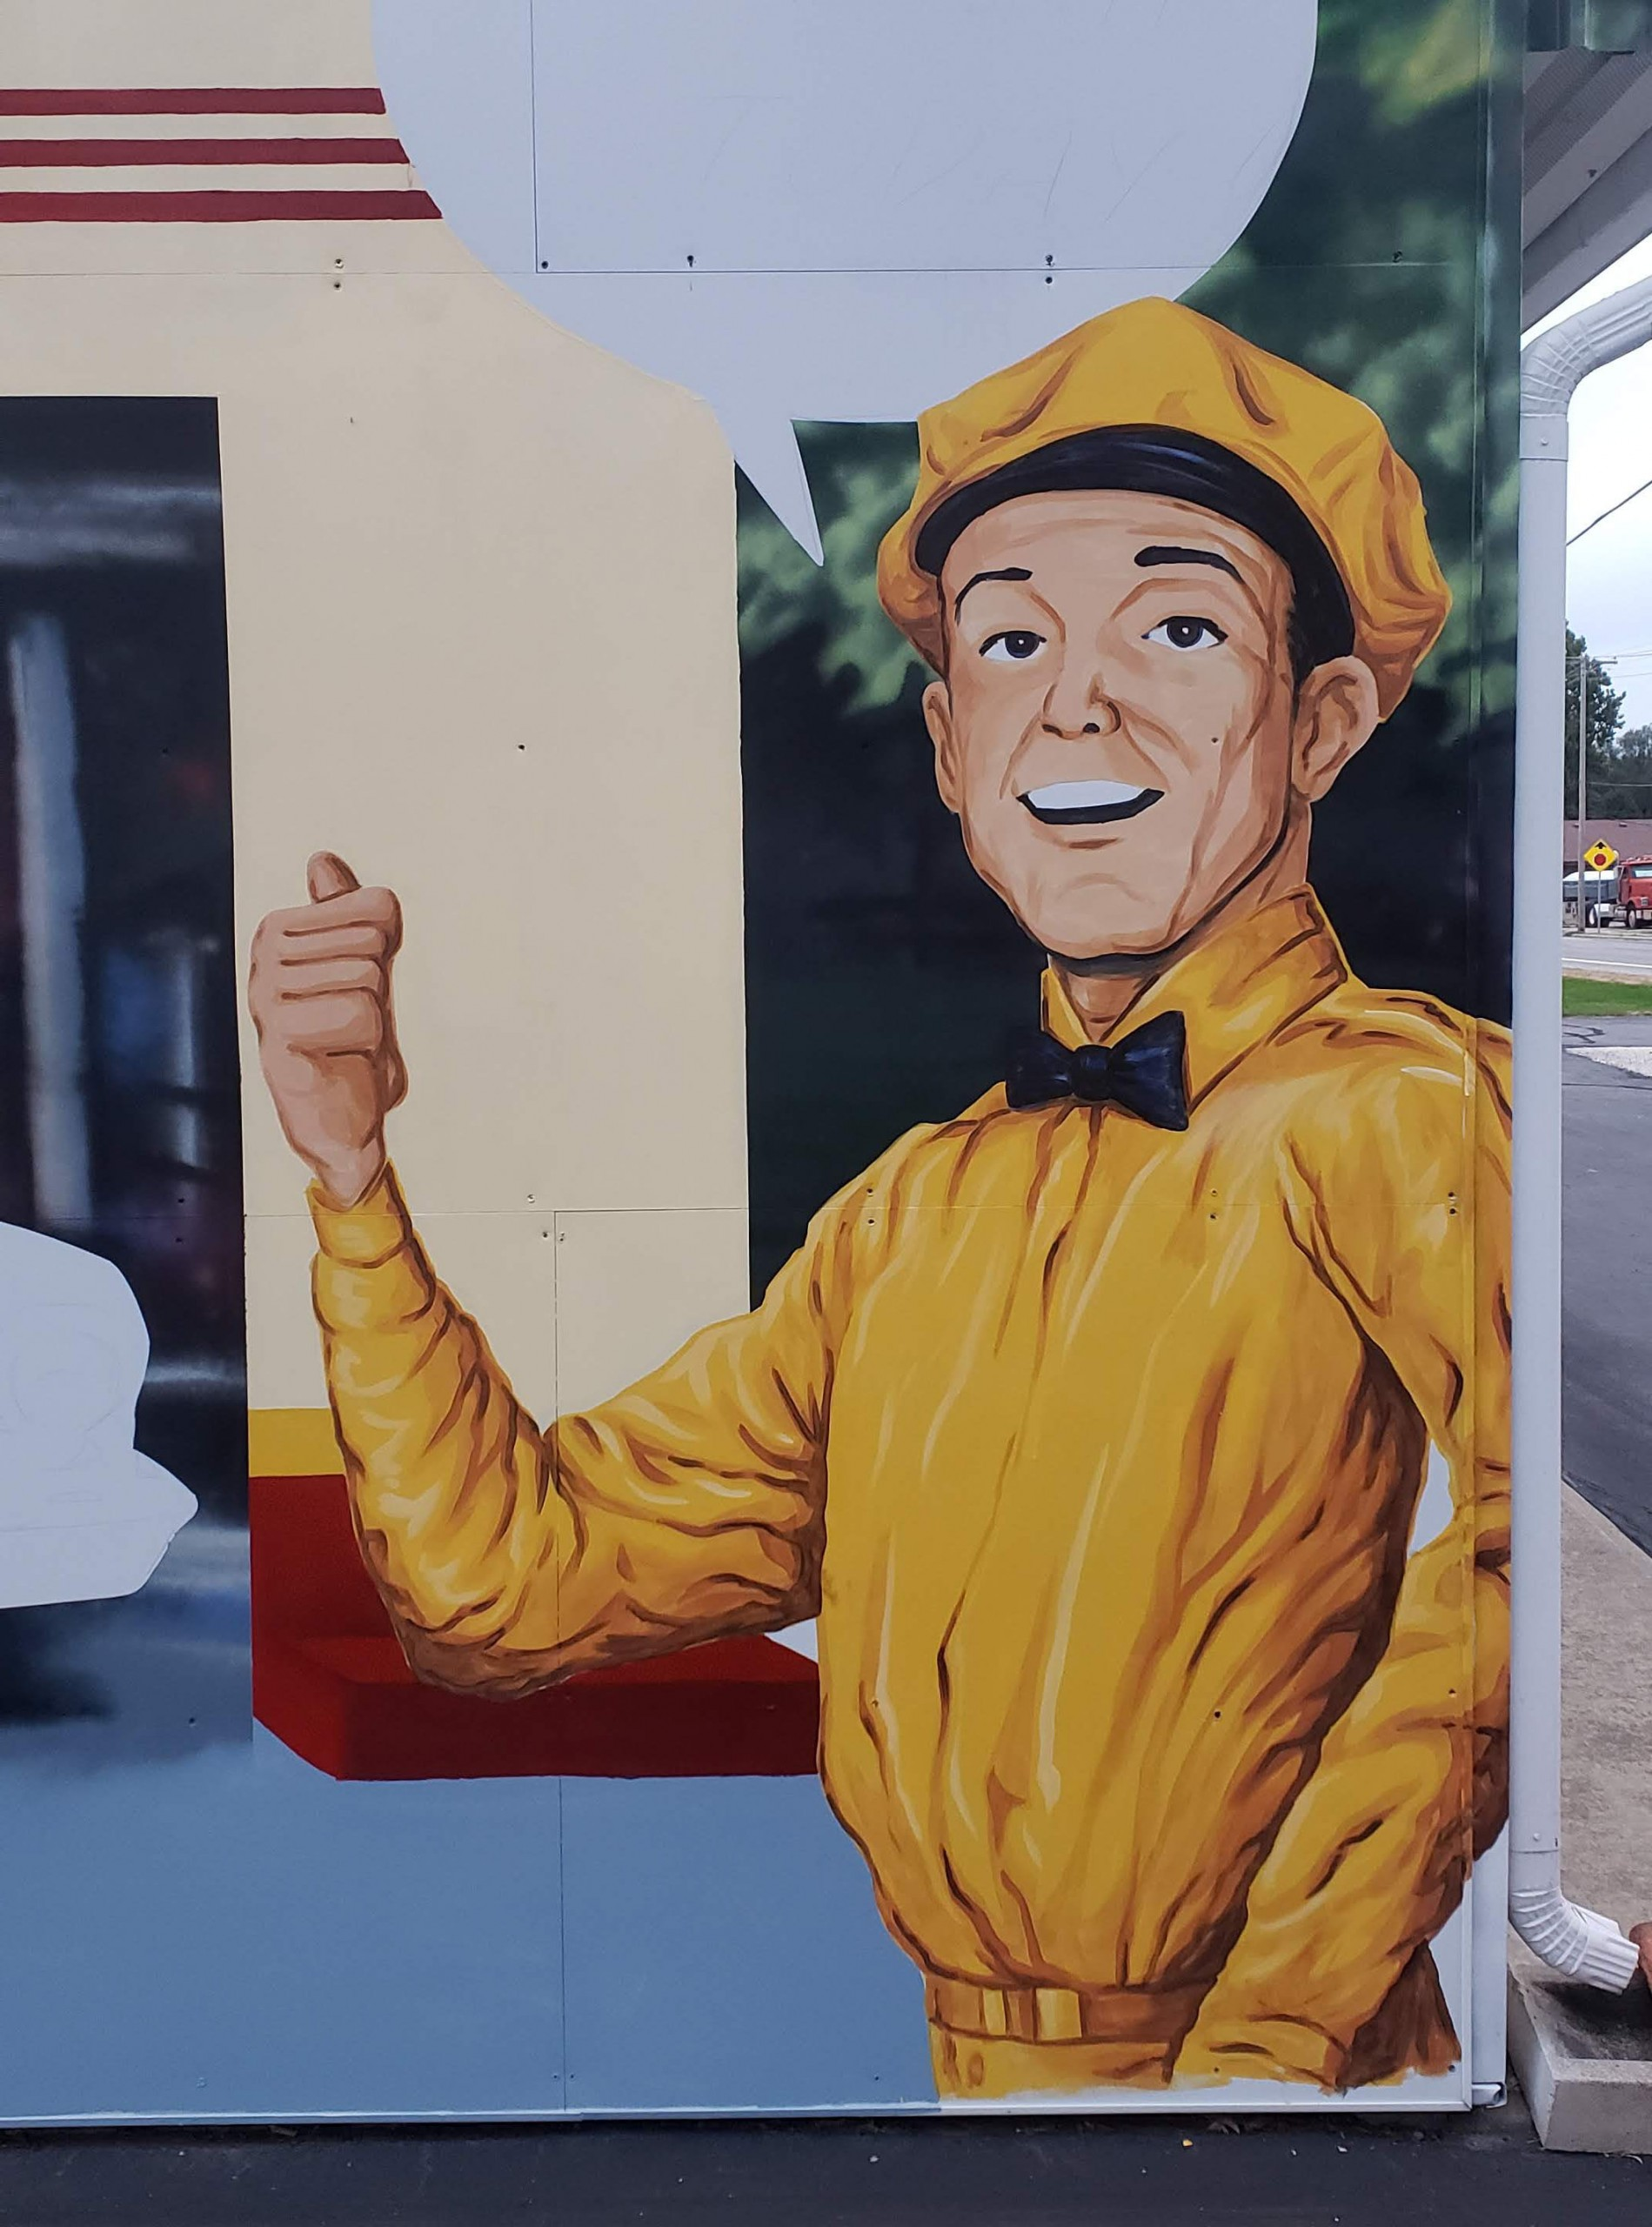 retro gas station worker mural painting